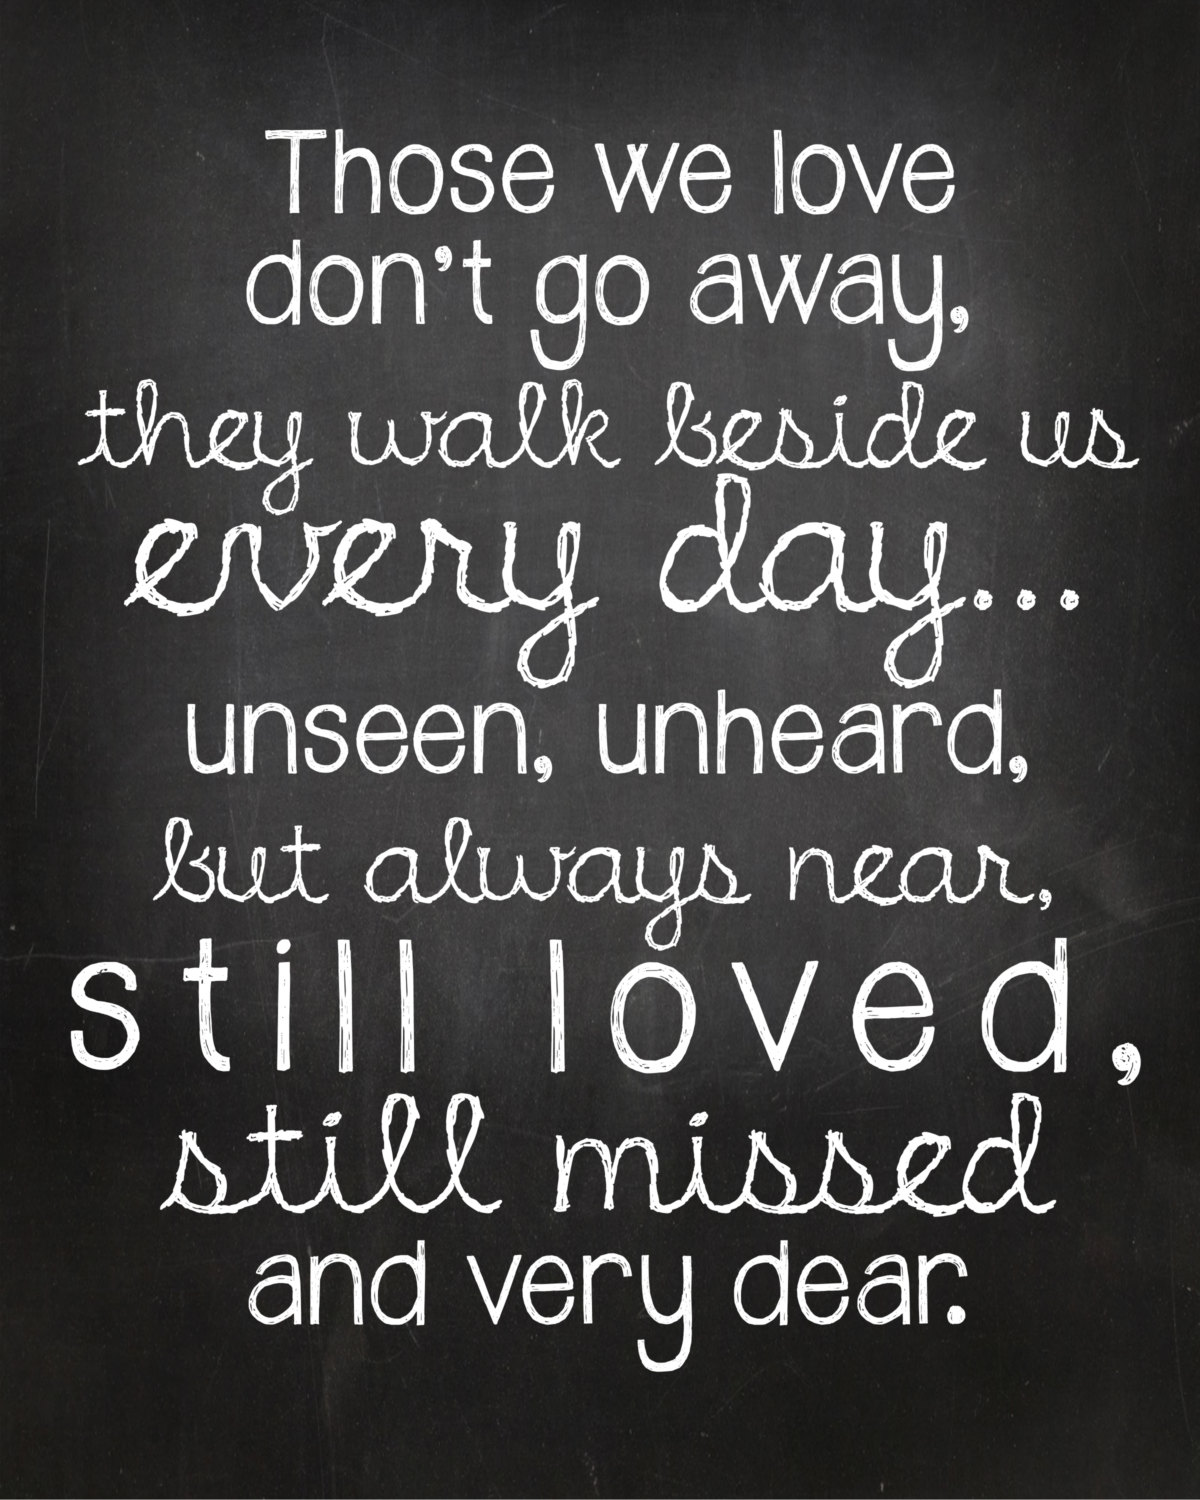 Inspirational Quotes About Death Of A Grandmother: Quotes About Grandmother Who Passed Away. QuotesGram